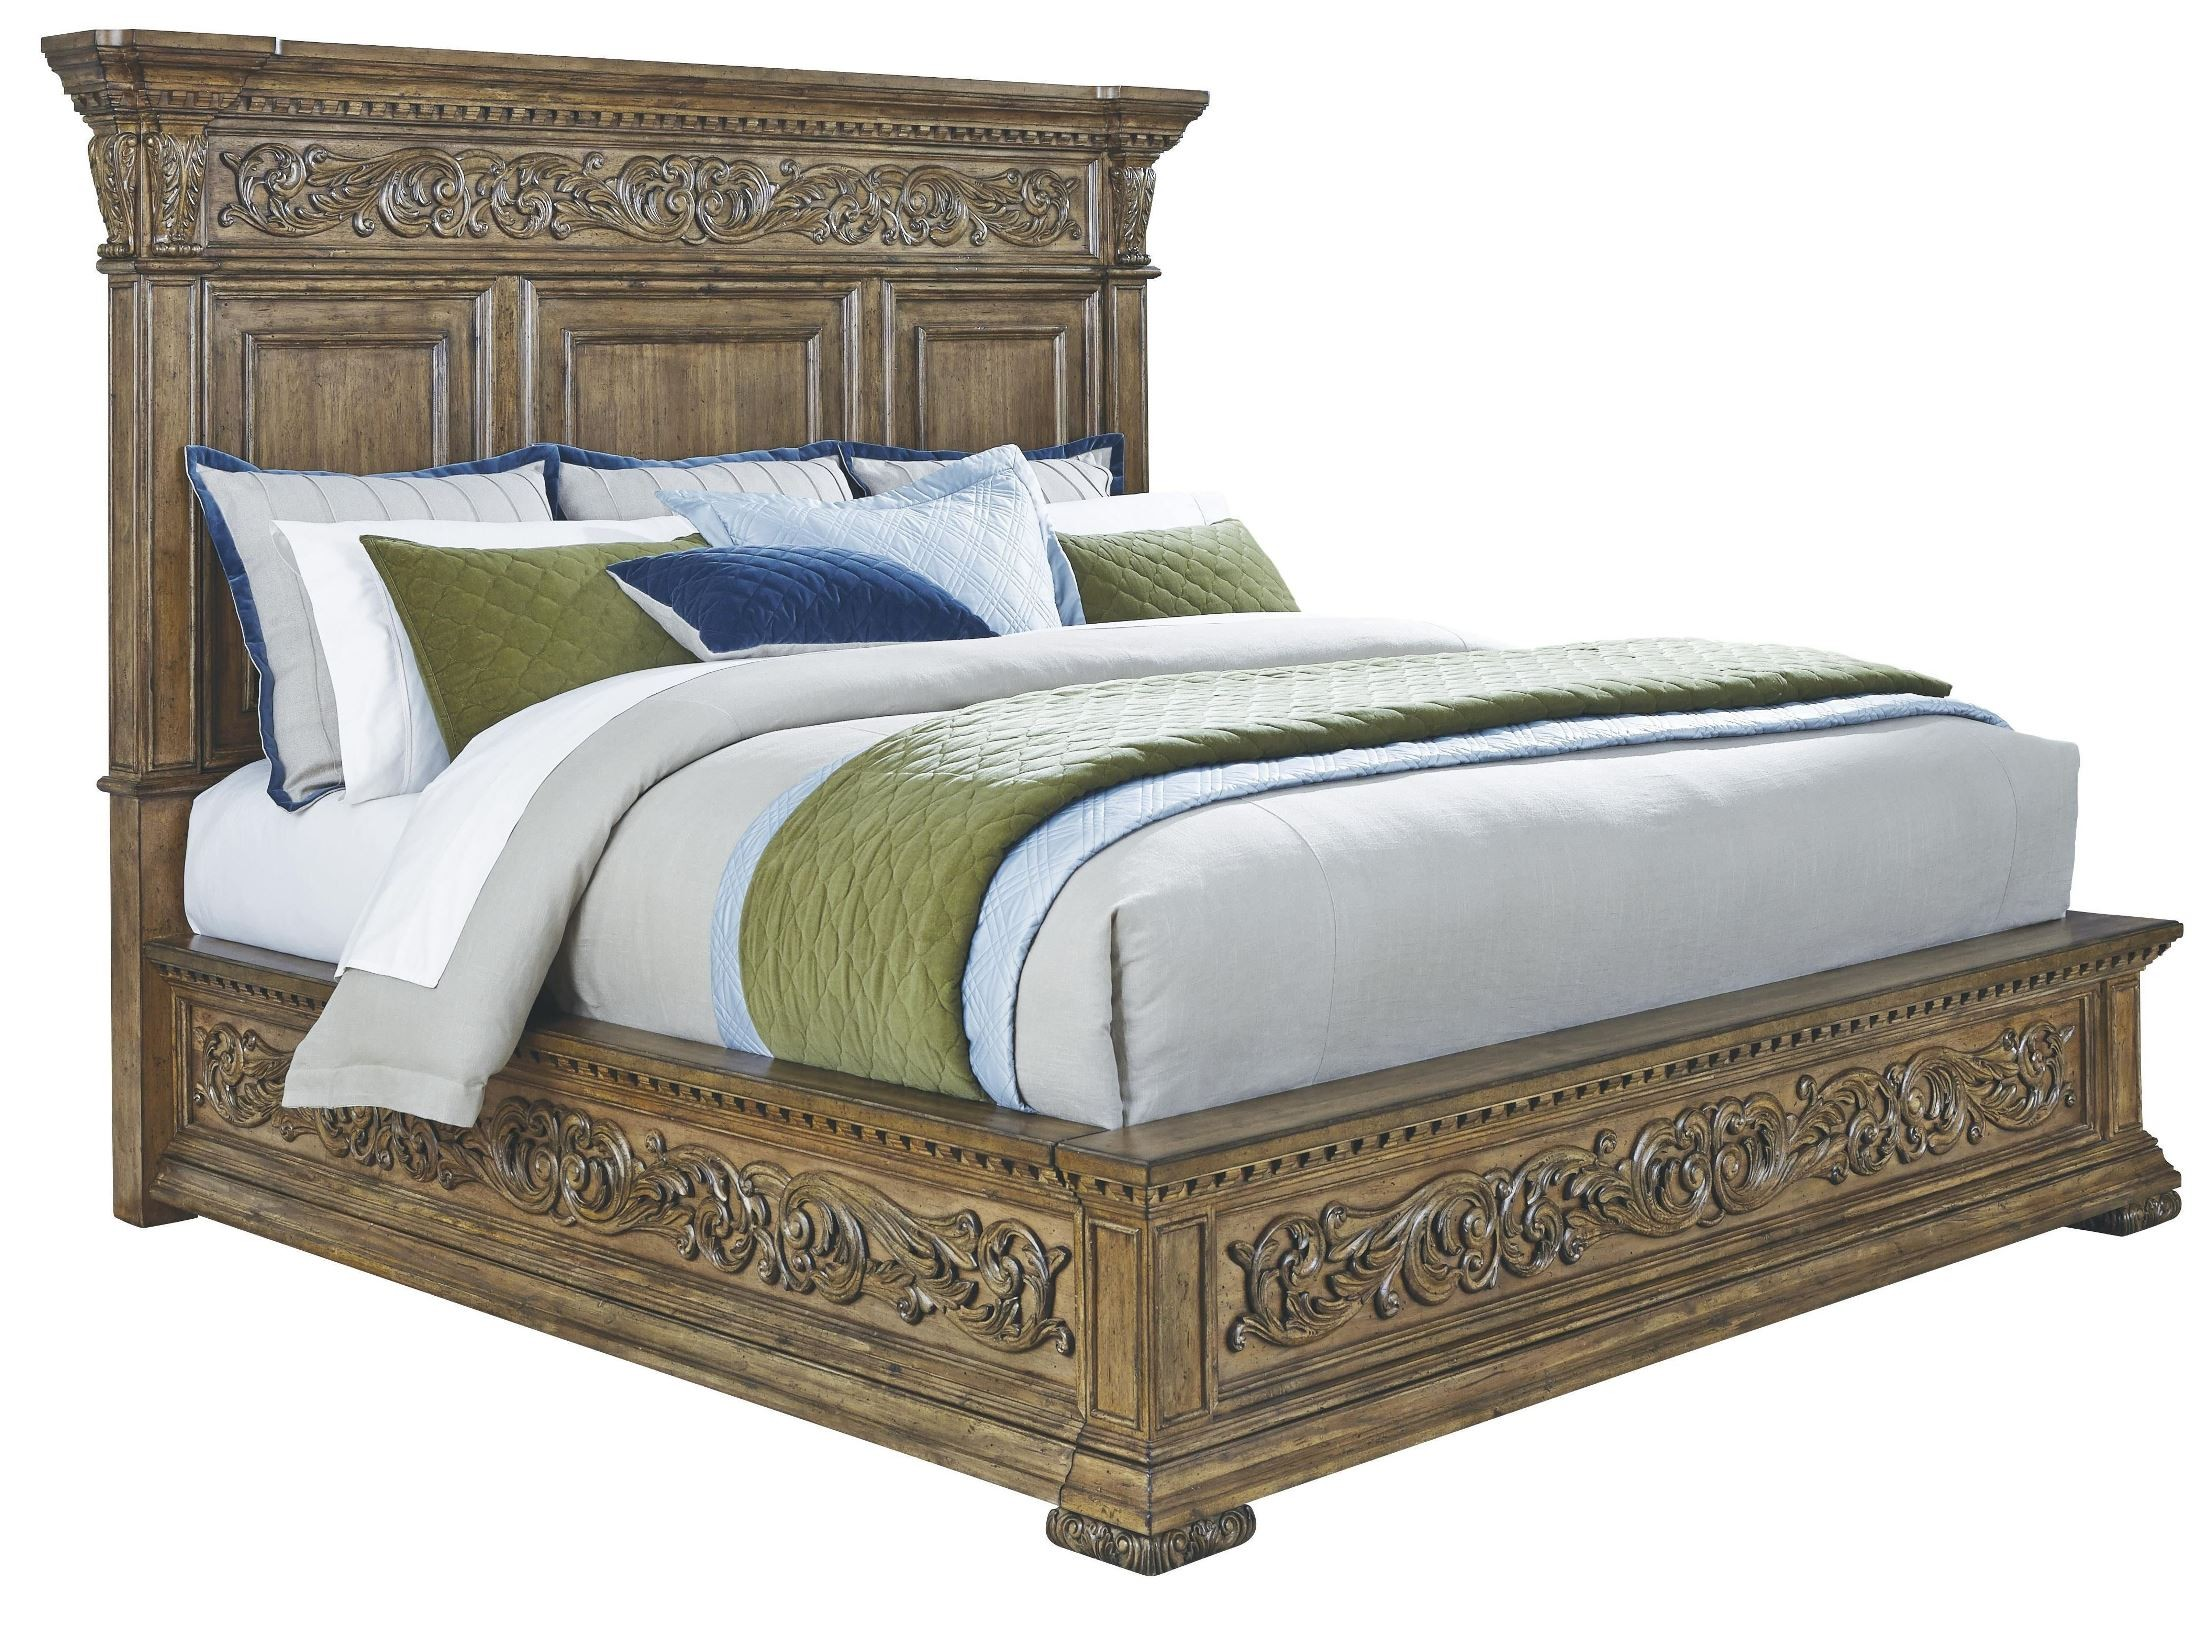 Platform Bed King Wood : Stratton medium wood cal king platform bed from